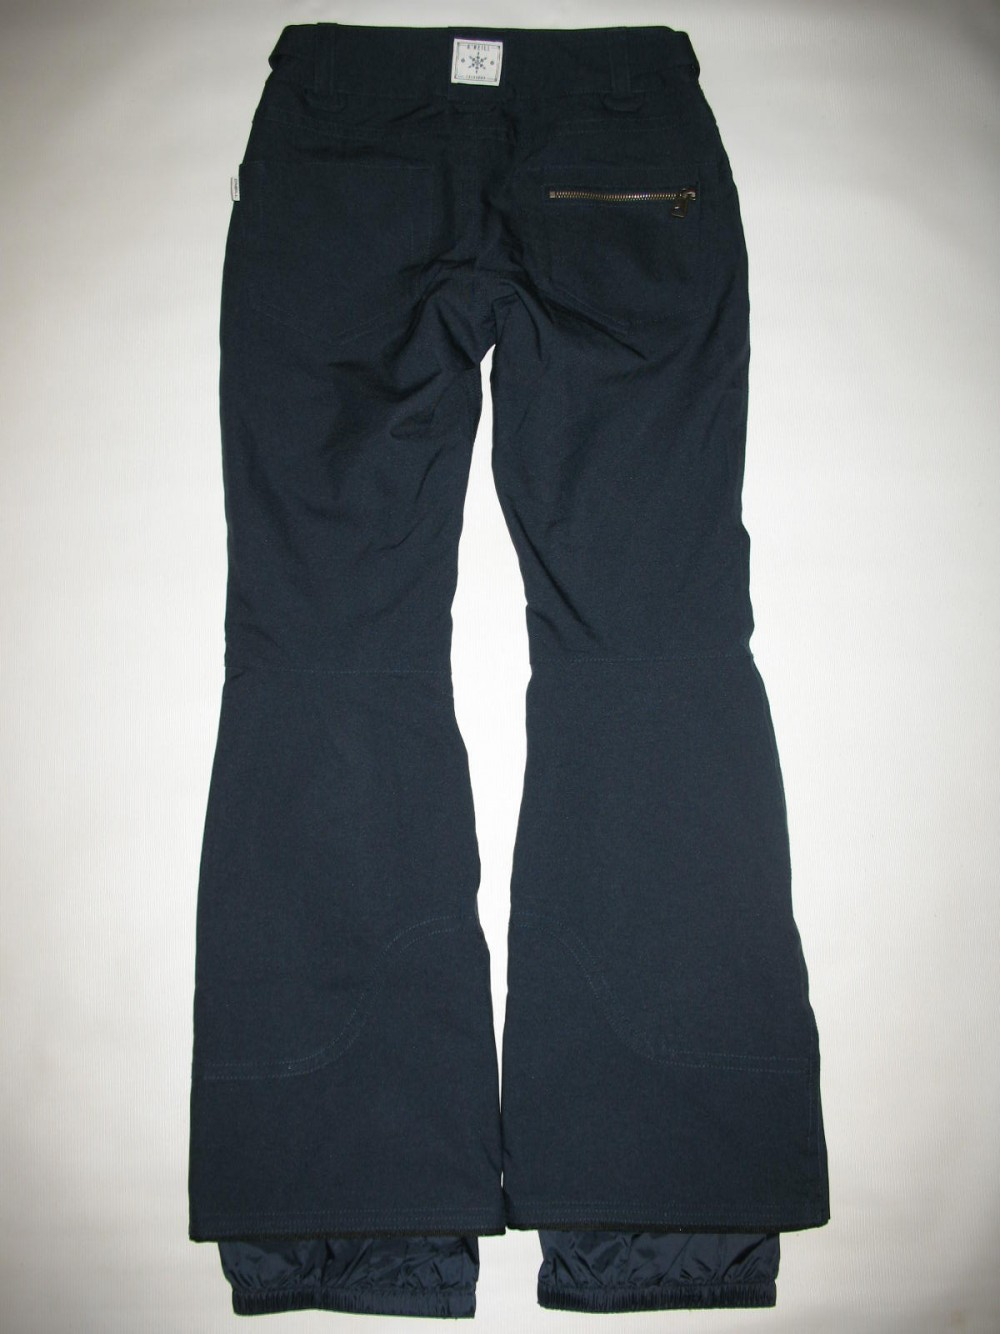 Штаны O'NEILL pw friday skinny pants lady (размер XS/S) - 2